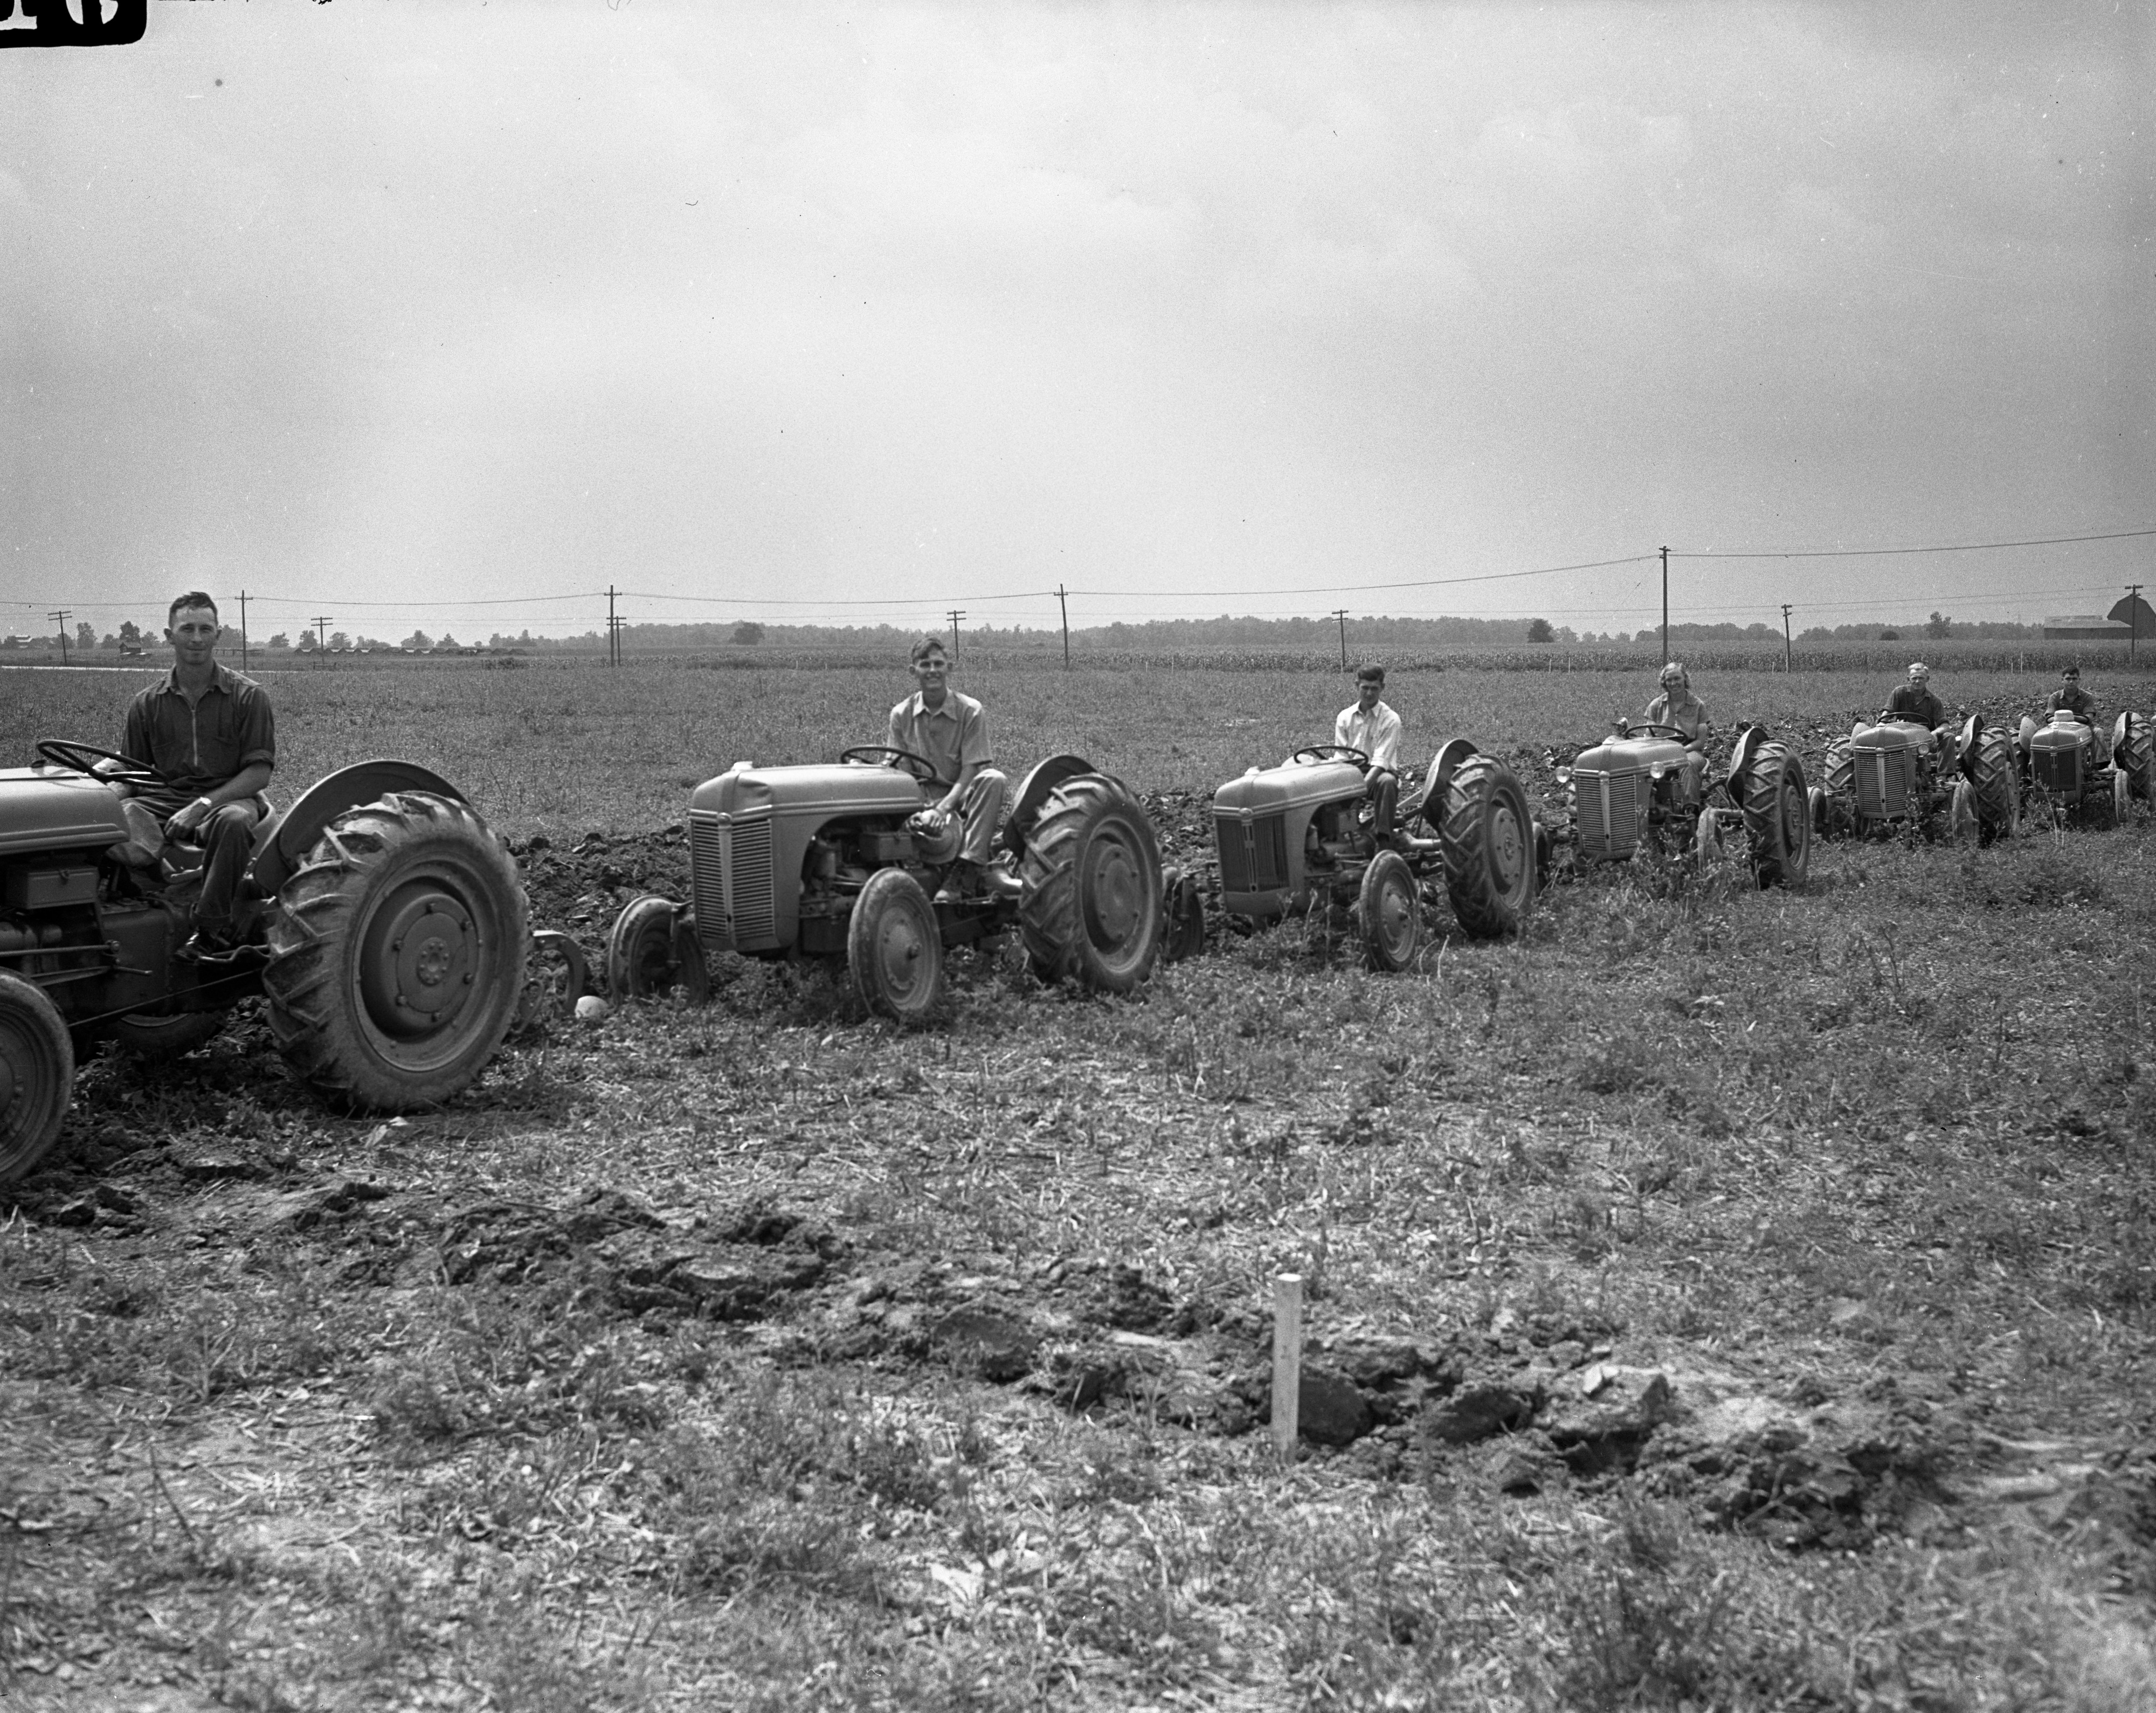 Tractor competition, July 1942 image